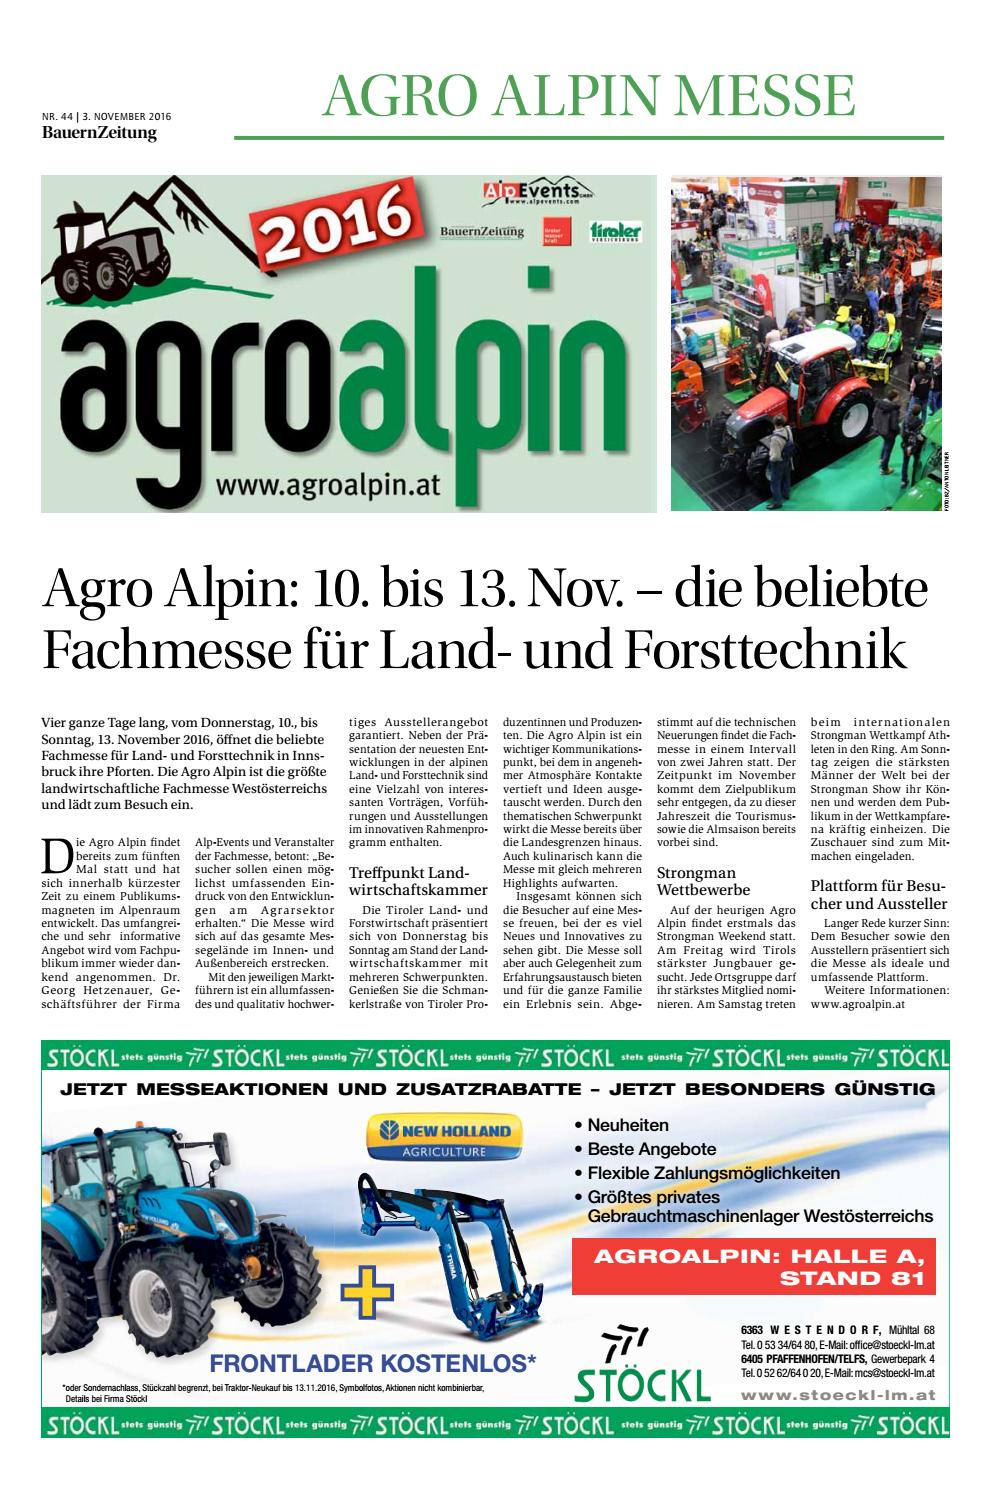 Messemagazin agro alpin 2016 by Tom Leiter - issuu